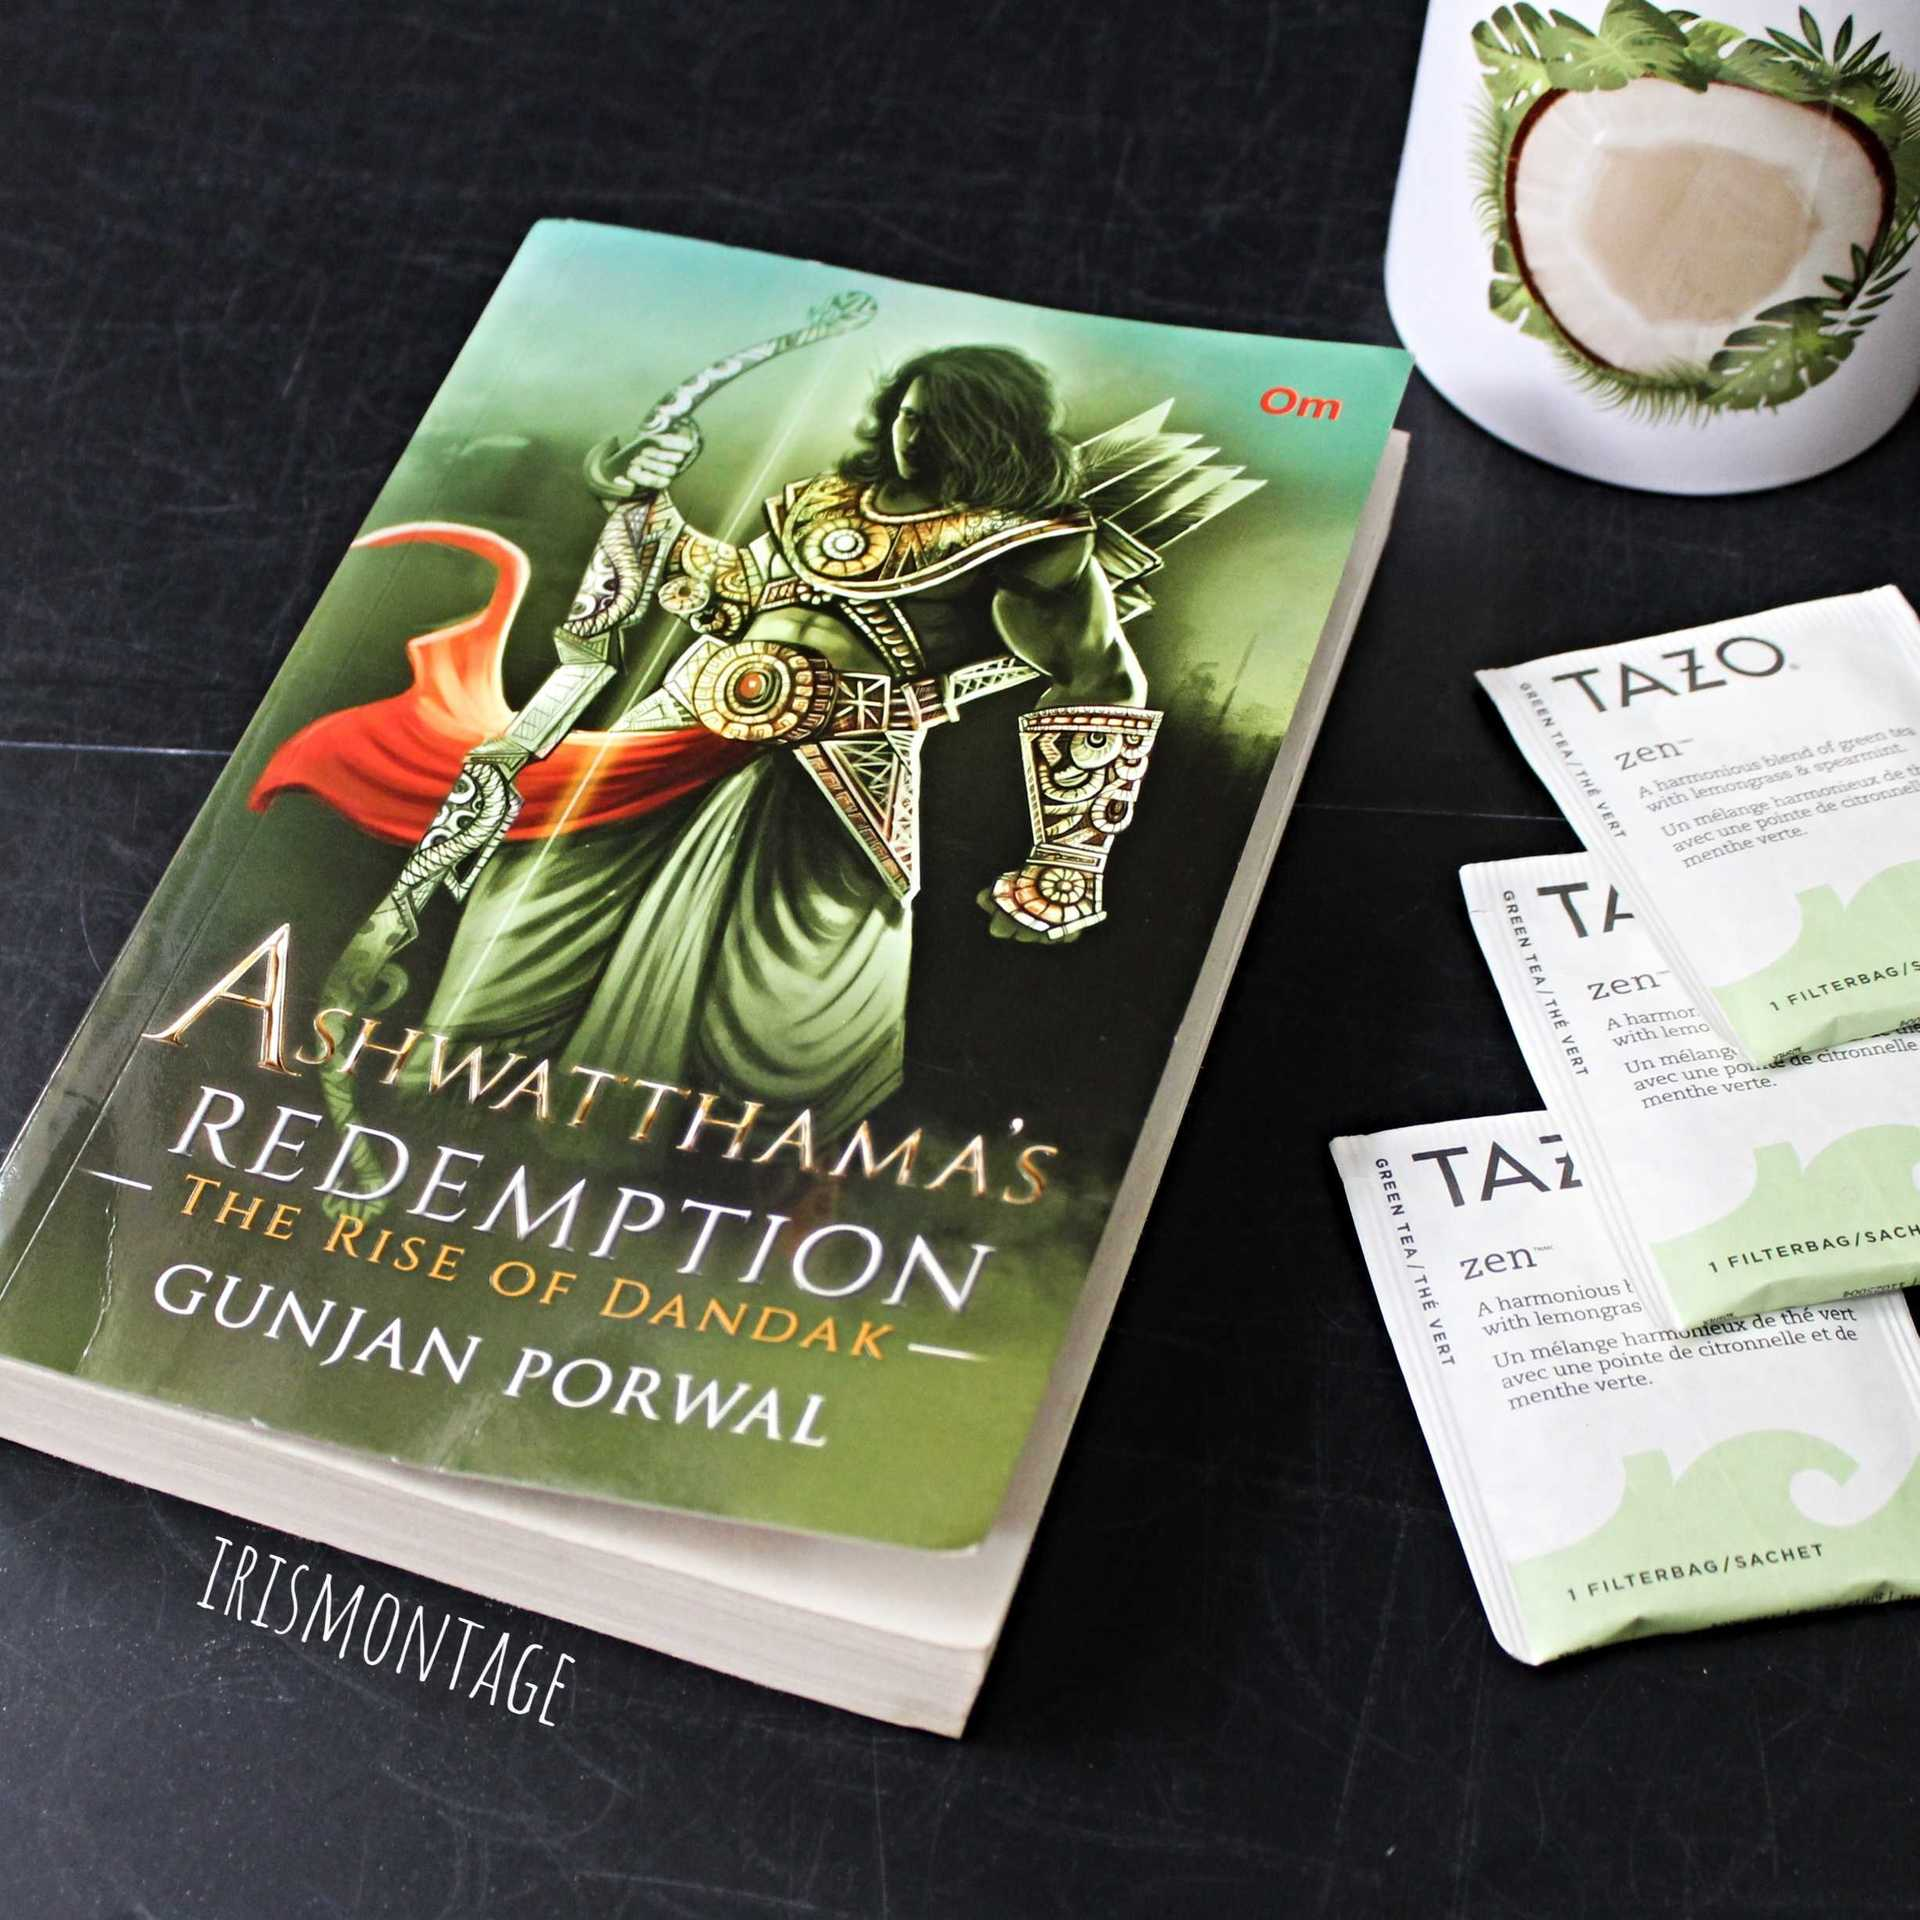 Ashwatthama's Redemption, The Rise of Dandak, by Gunjan Porwal image